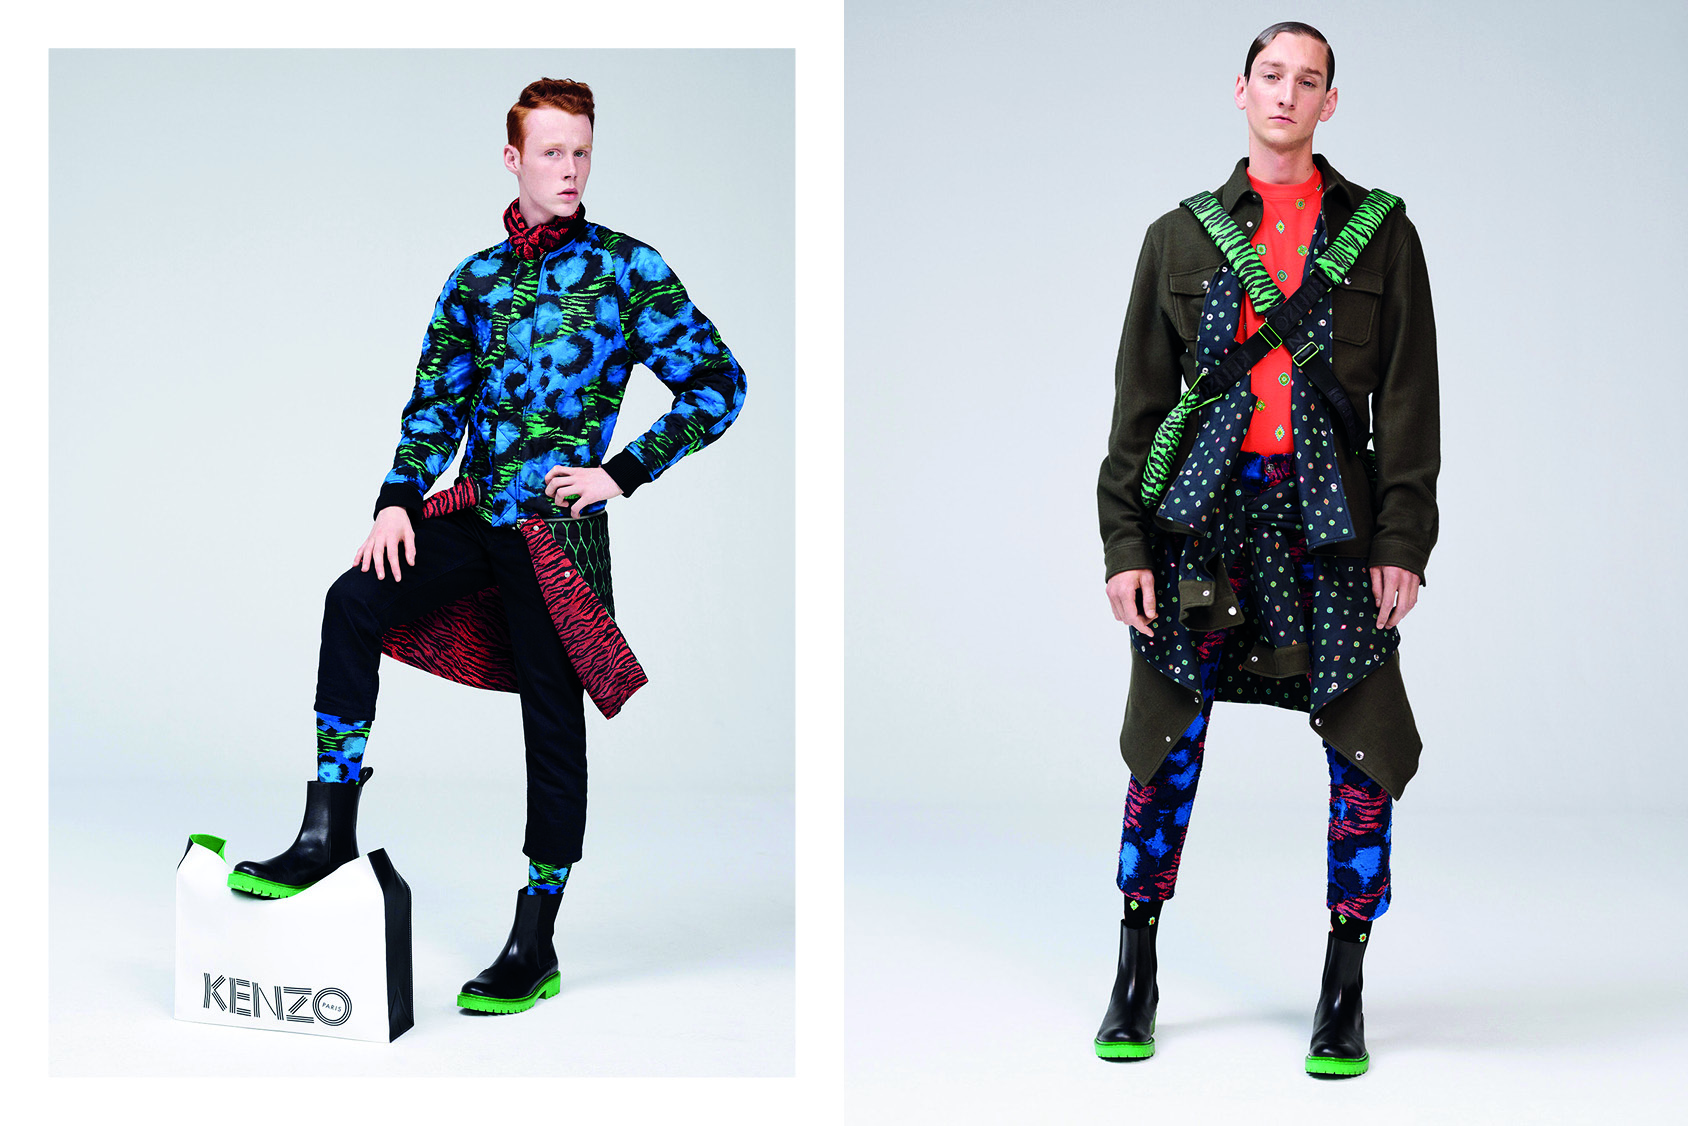 oktb3-16-c-al-inside-kenzo-story-behind-the-collection